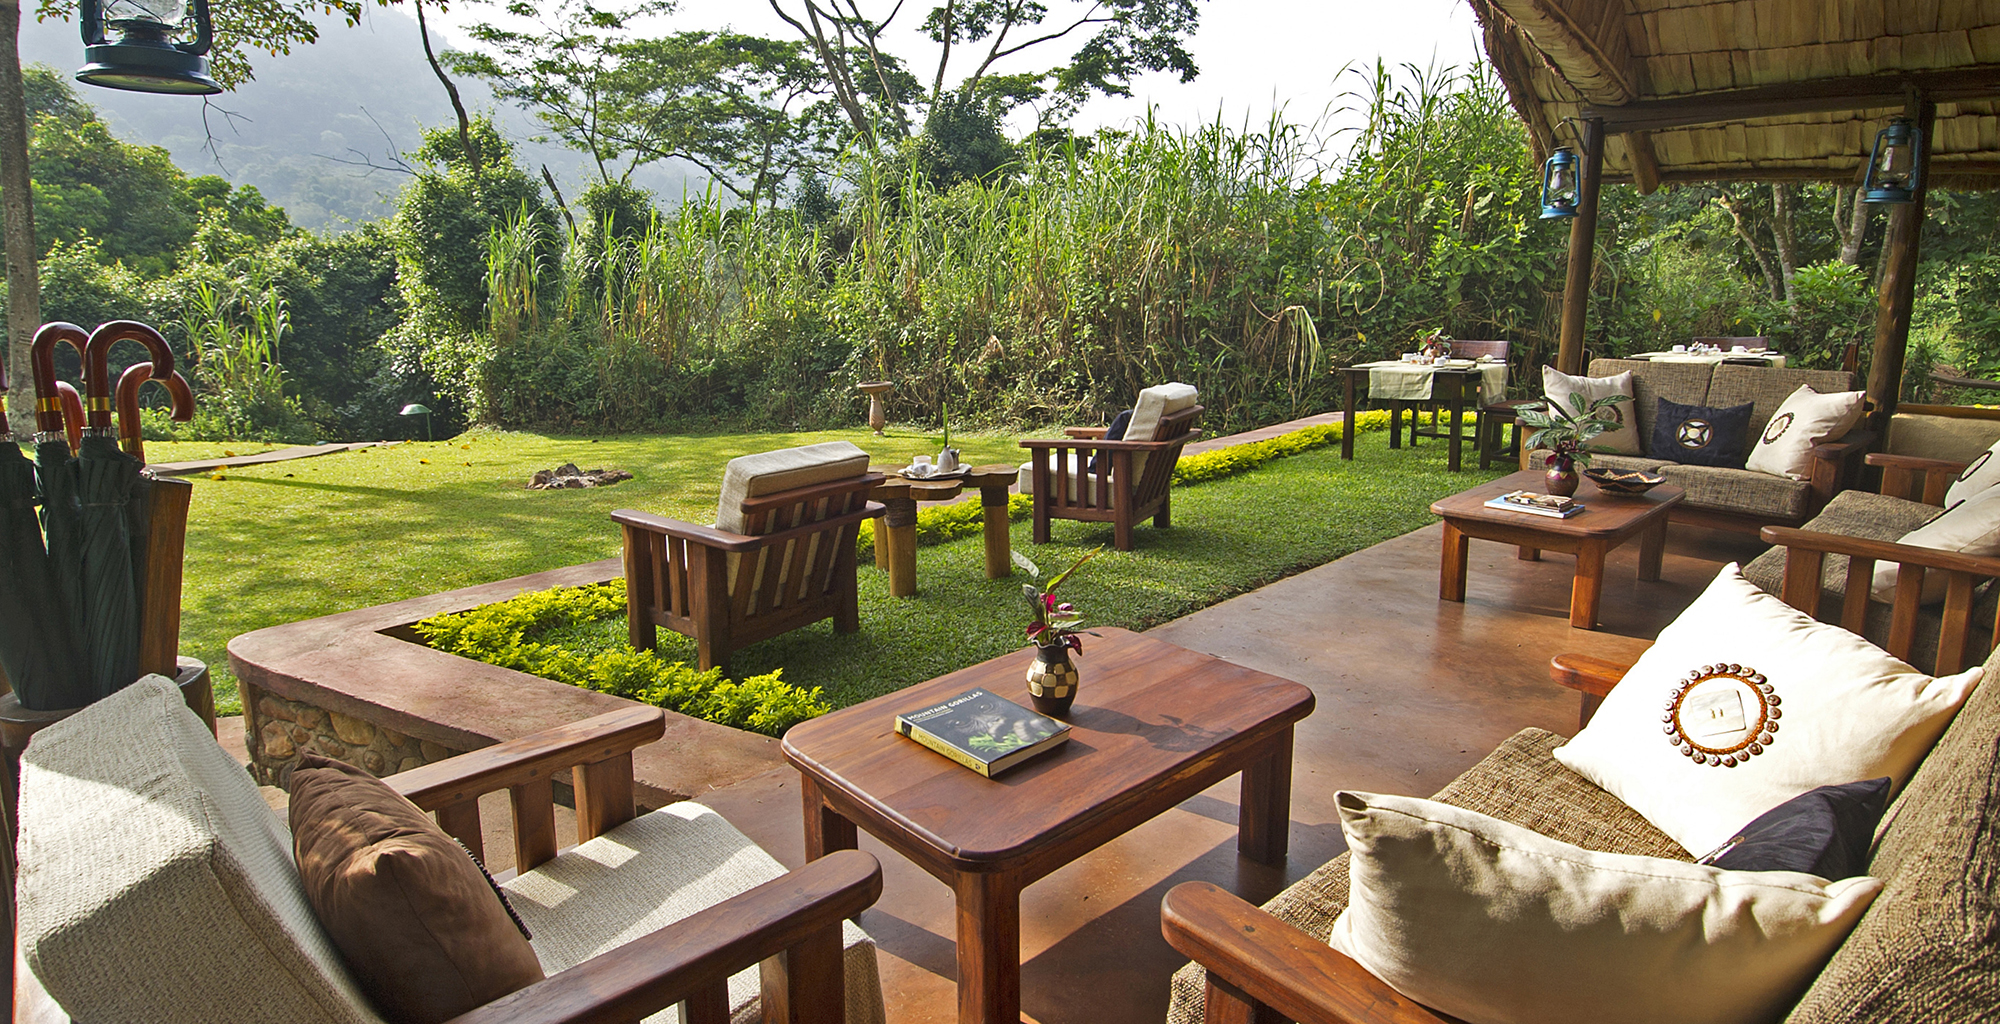 Uganda-Gorilla-Forest-Camp-Lounge